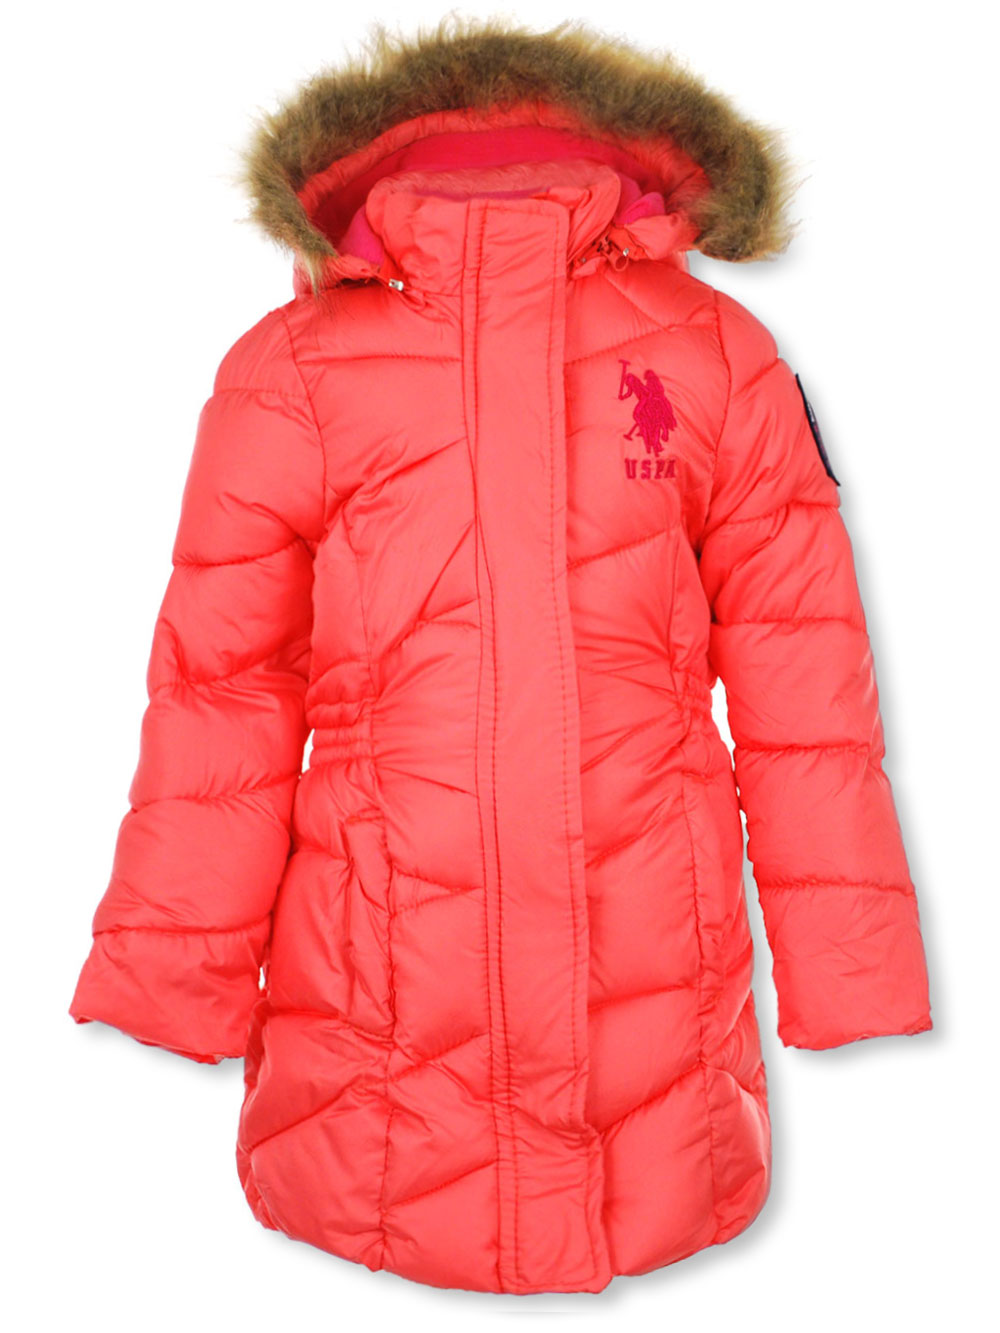 Jackets and Coats Insulated Parka